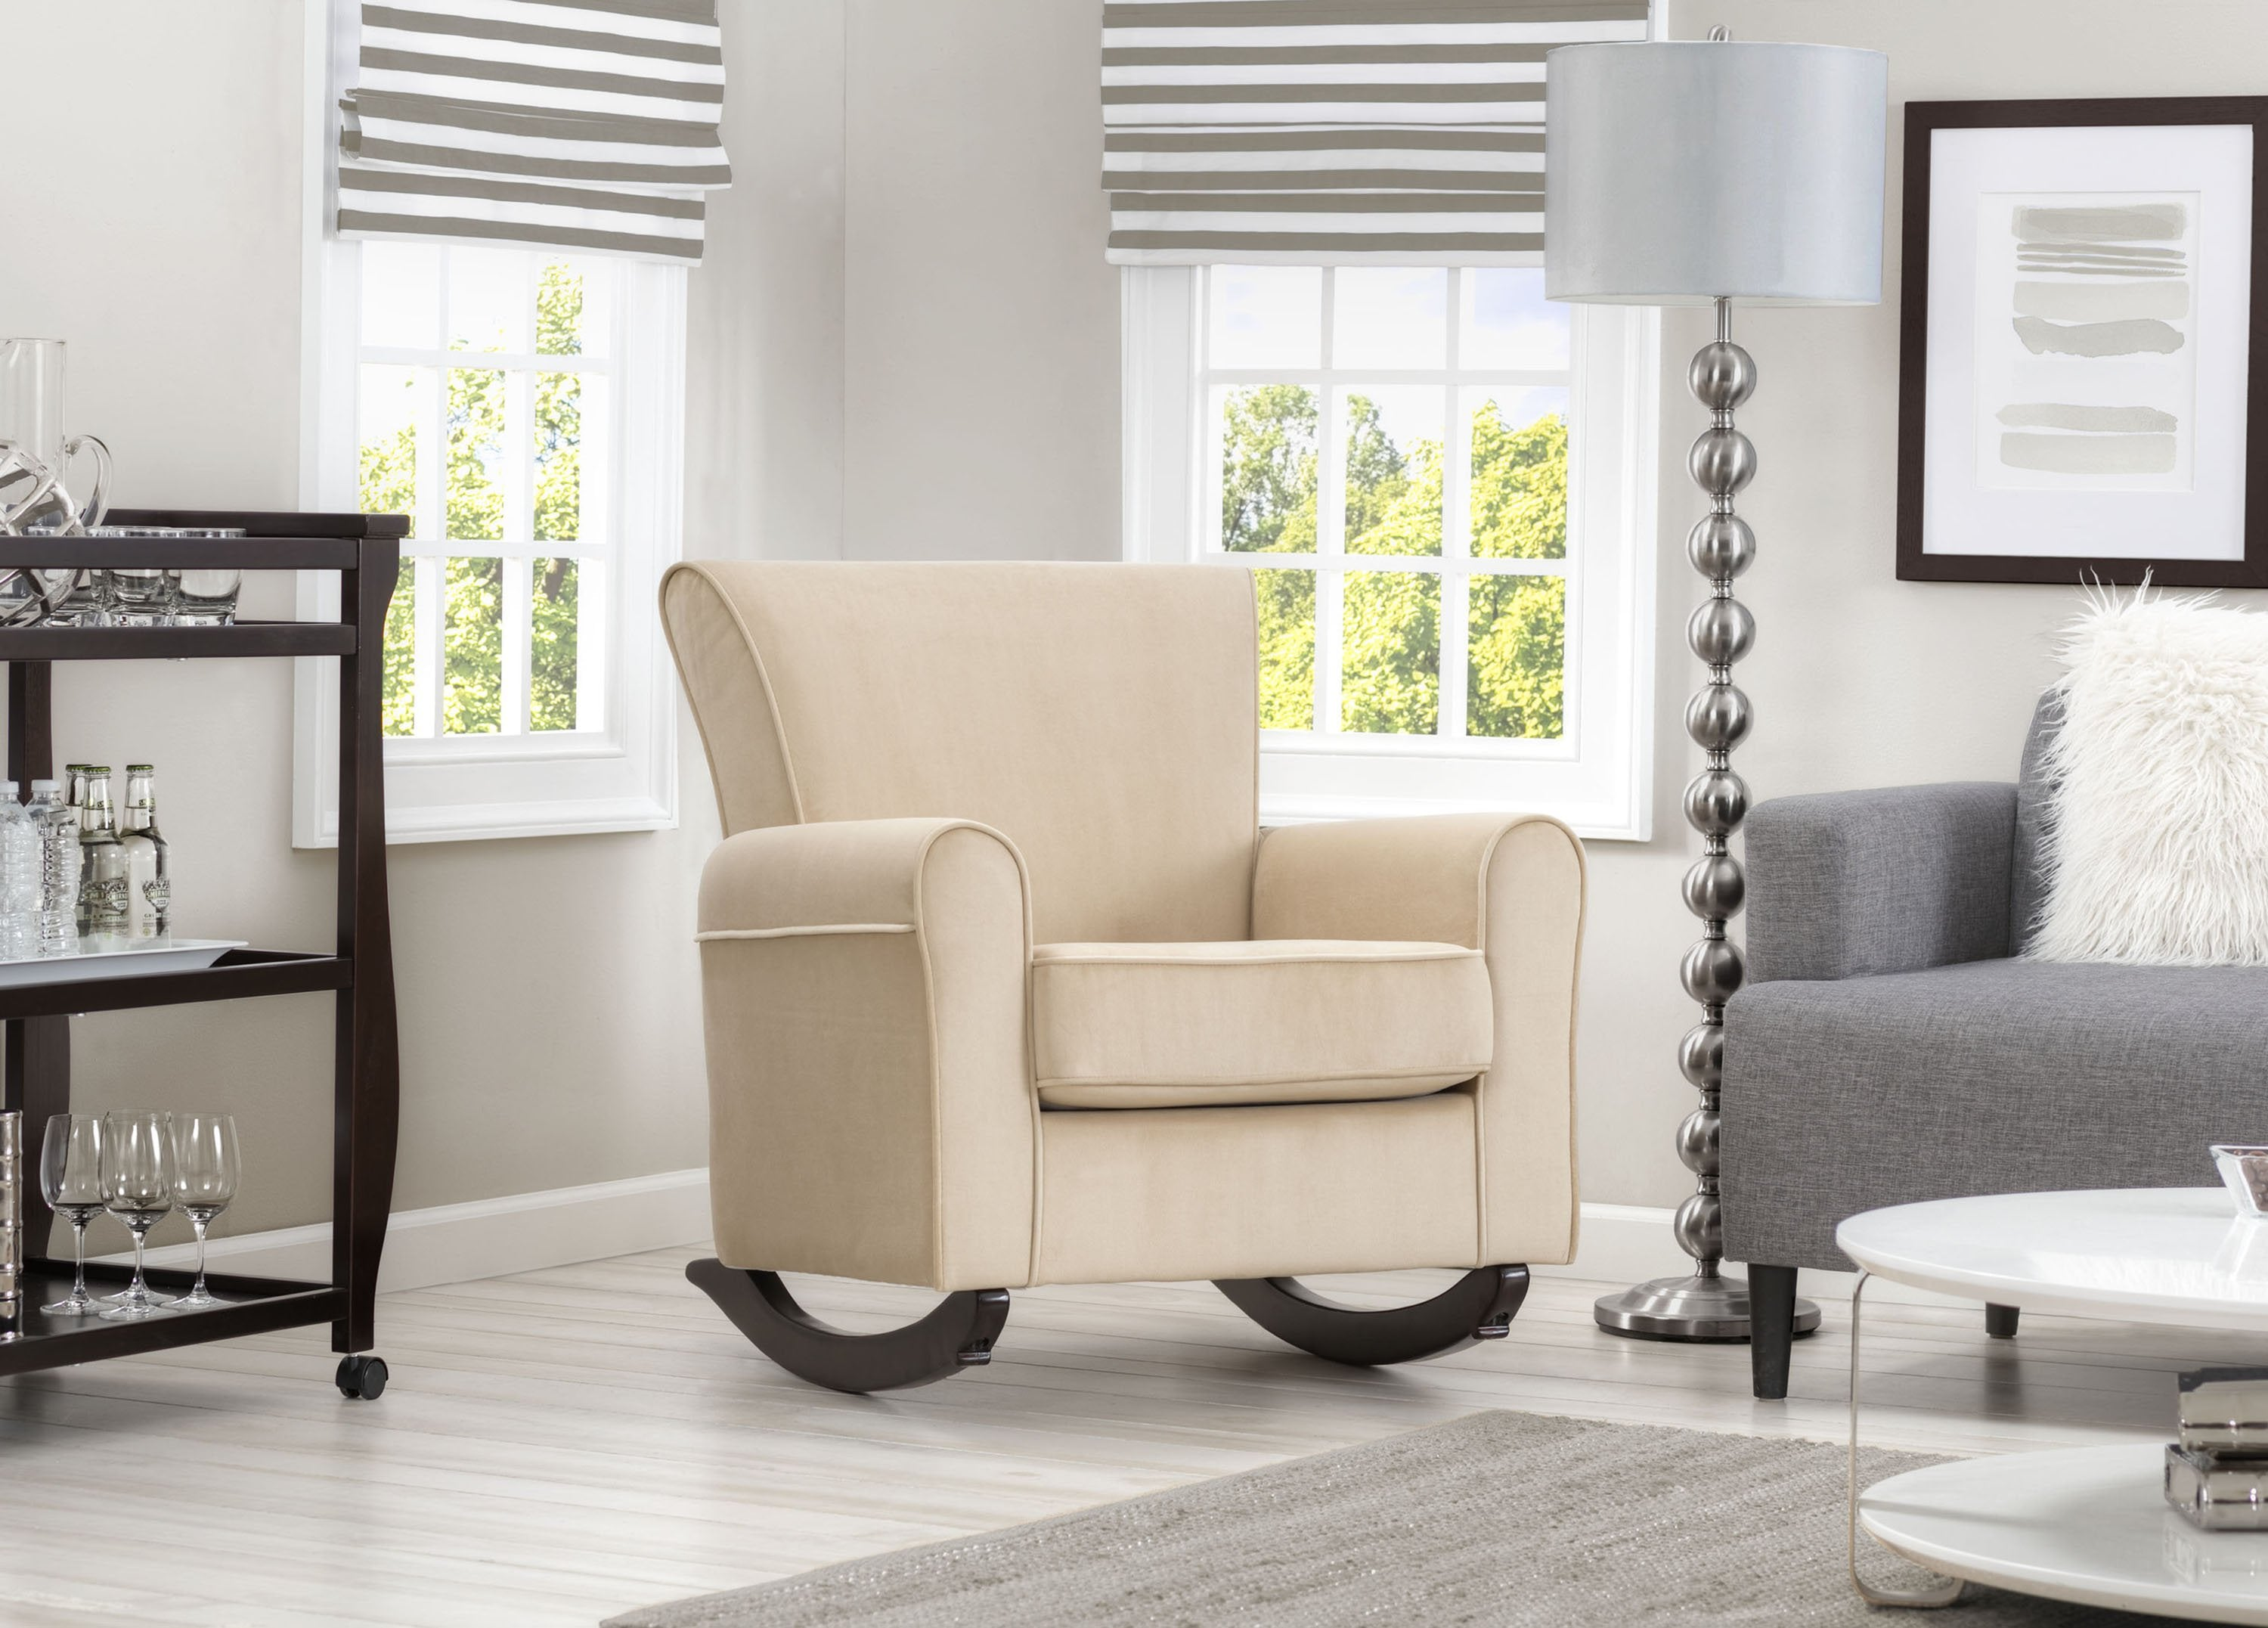 Lancaster Rocking Chair featuring LiveSmart Fabric by Culp | Delta ...